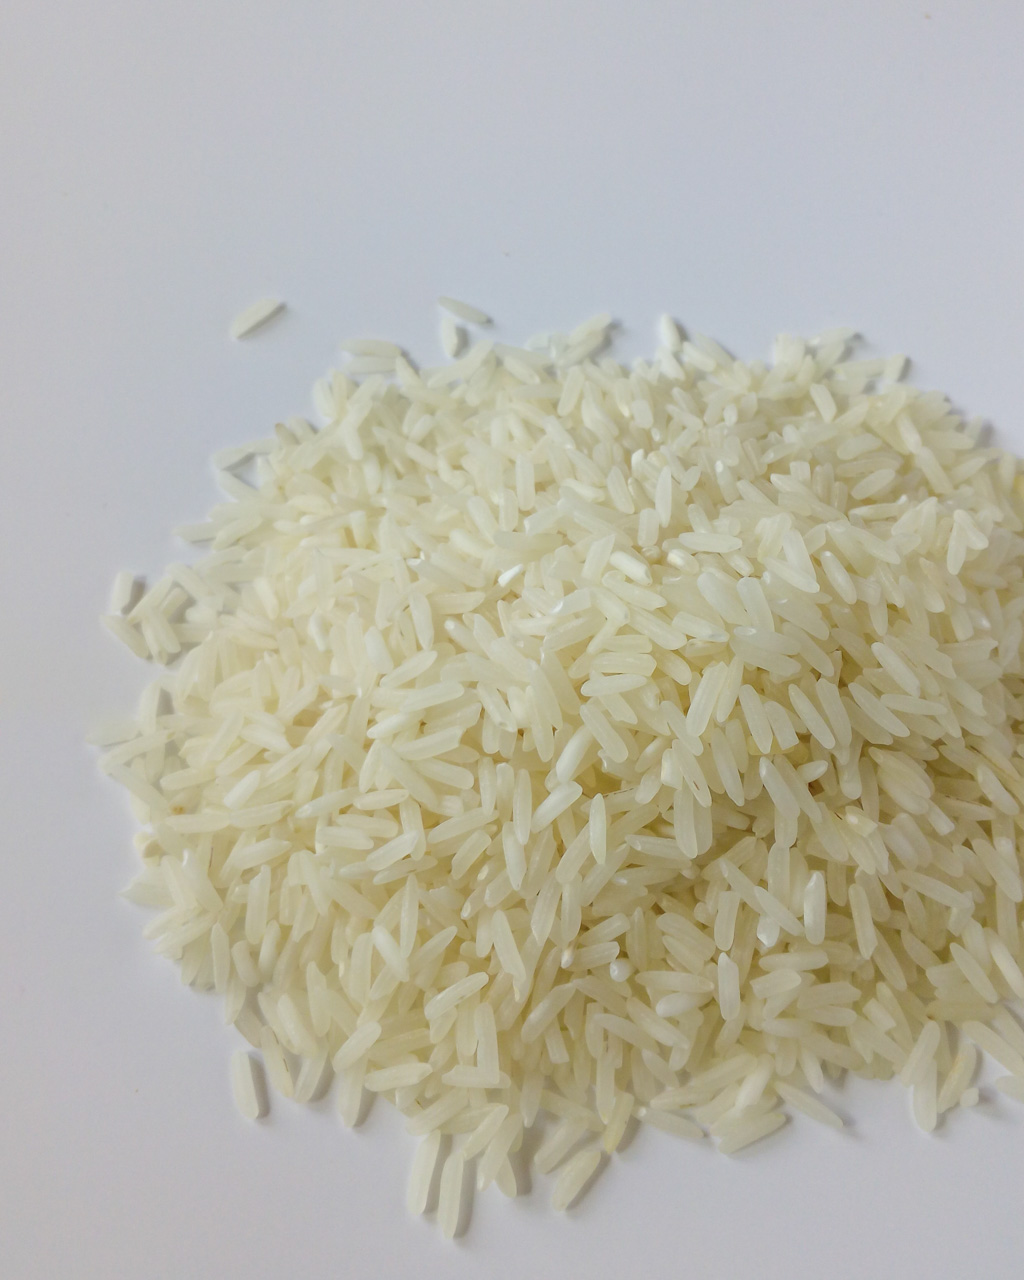 How To Cook Rice Perfectly Every Time – Cooking rice shouldn't be scary. Here is a simple tutorial on how to cook different types of rice perfectly every single time. The rice is going to be beautiful and fluffy, and you won't have burned bottom of the pan. | #howtocookrice #cookingrice #perfectlycookedrice #fluffyrice | simplyanchy.com